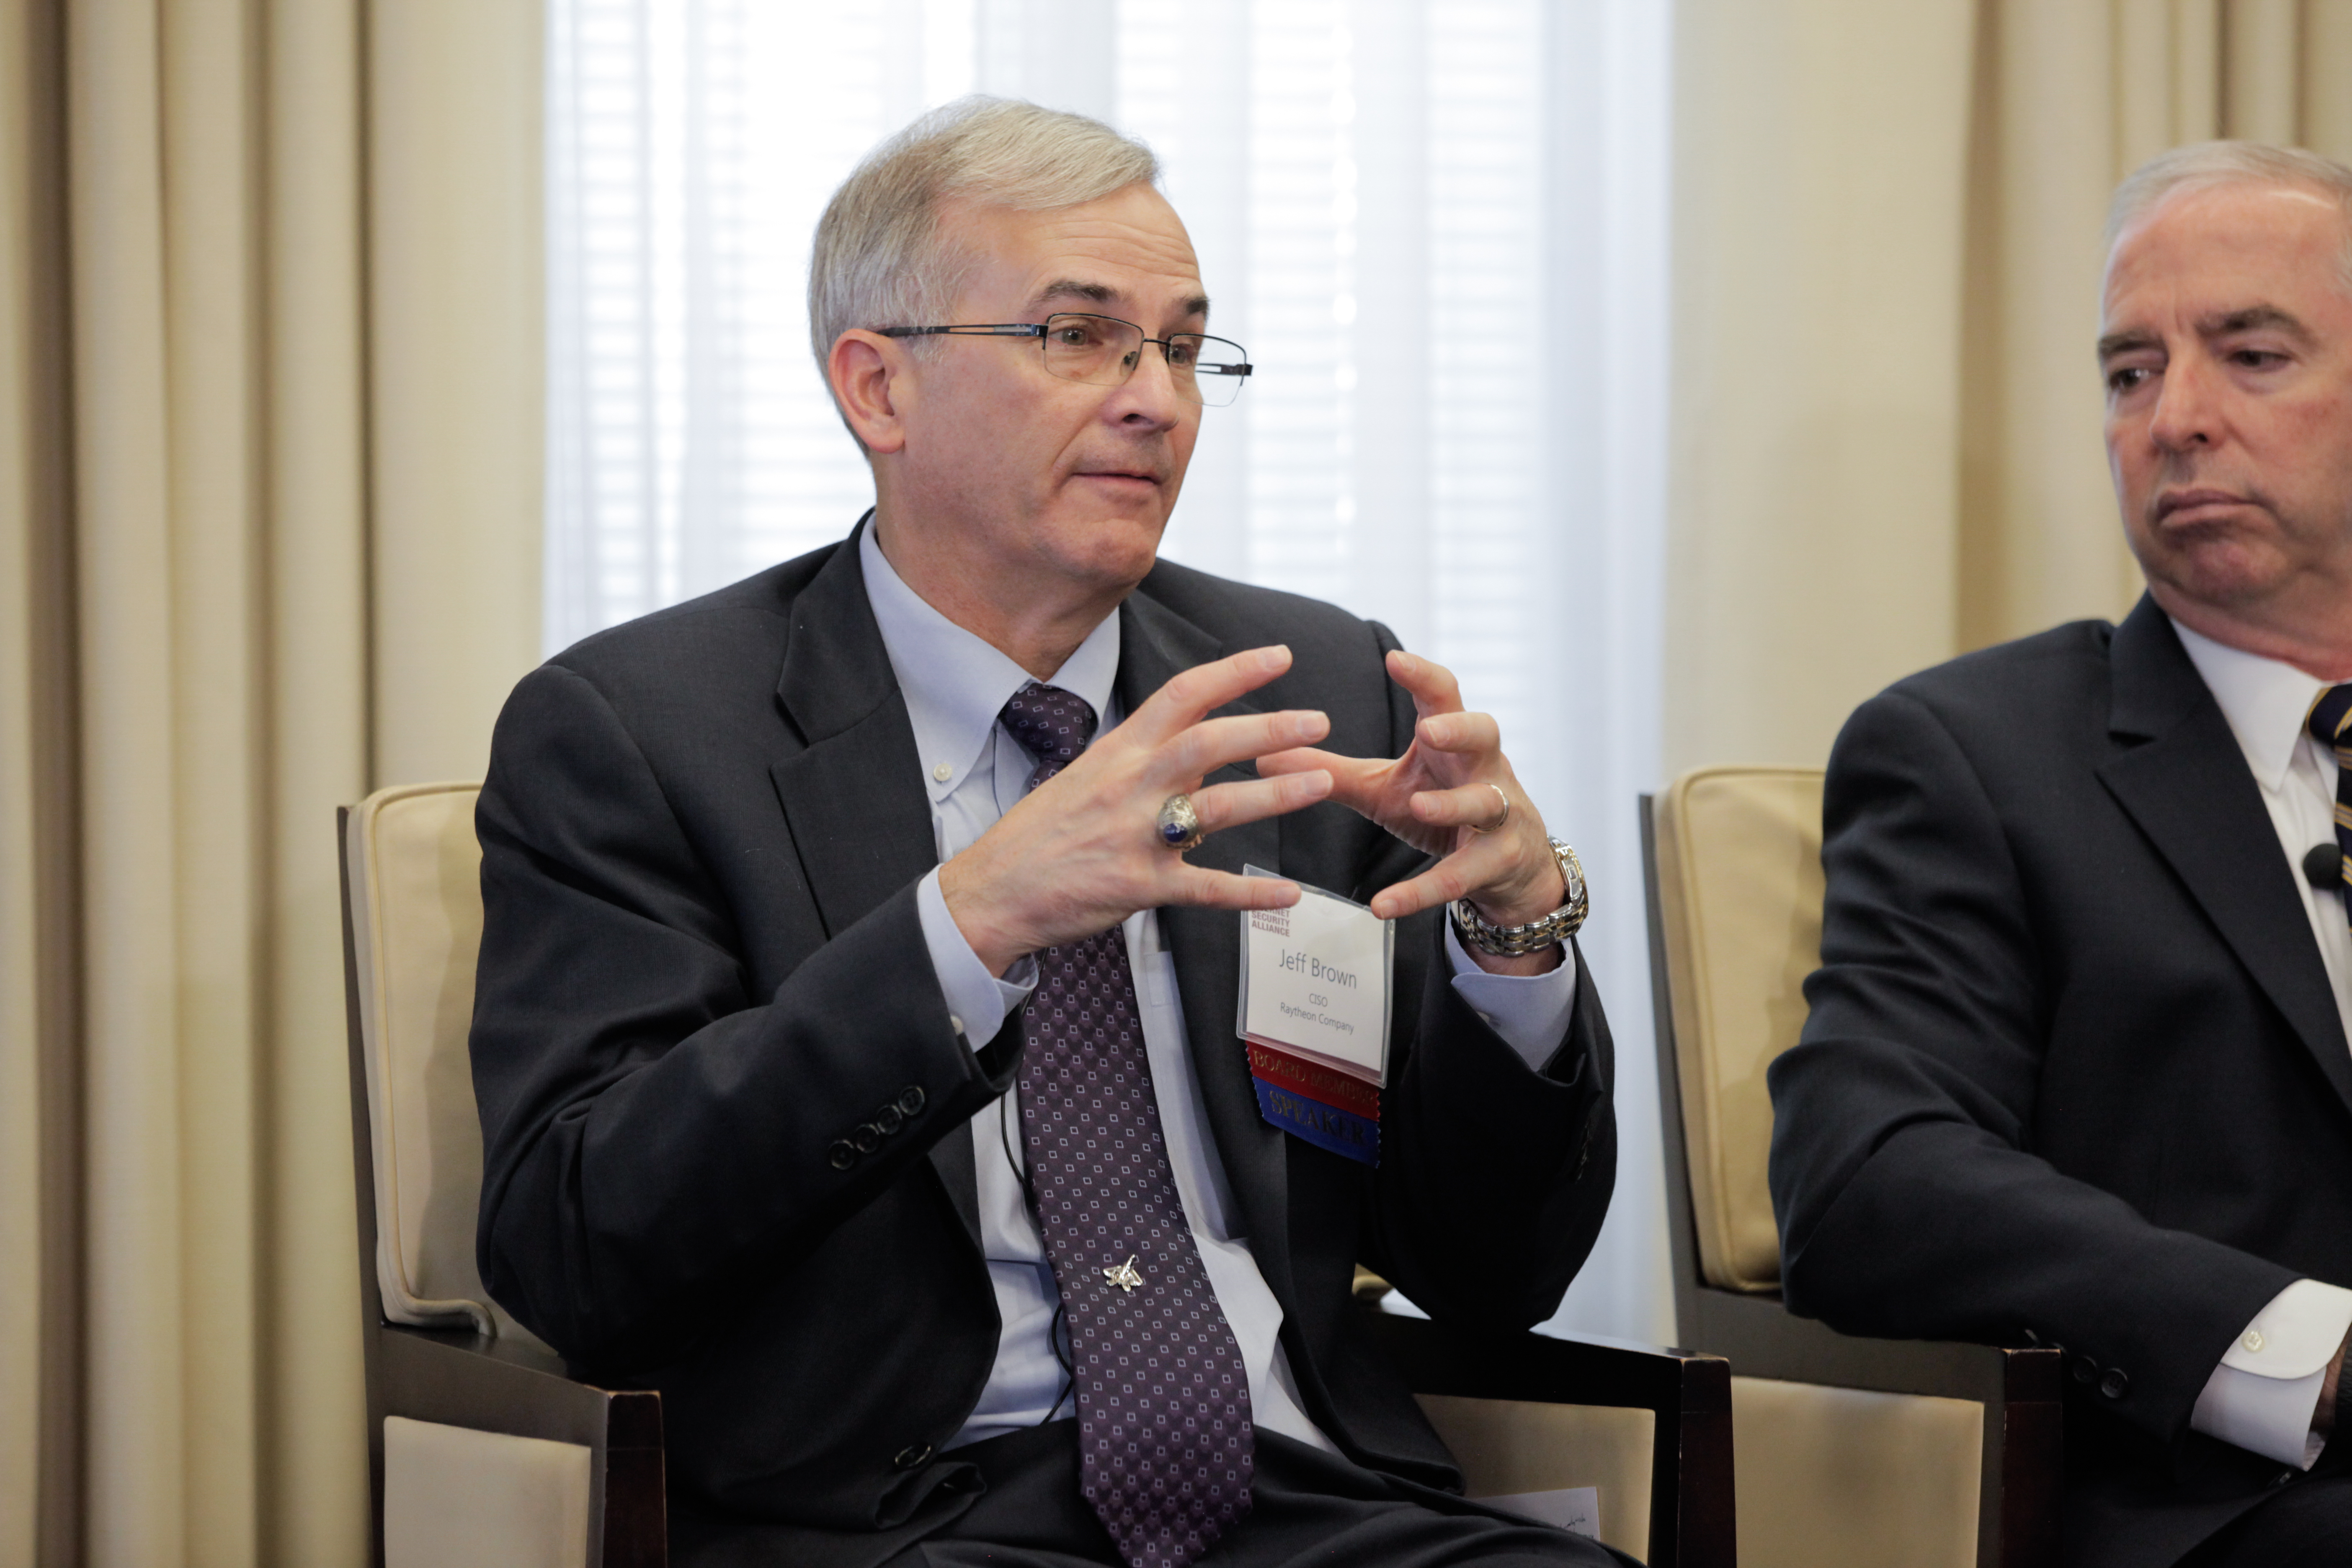 ISA board members Jeff Brown (Raytheon), at right, and Gary McALum (USAA), at left